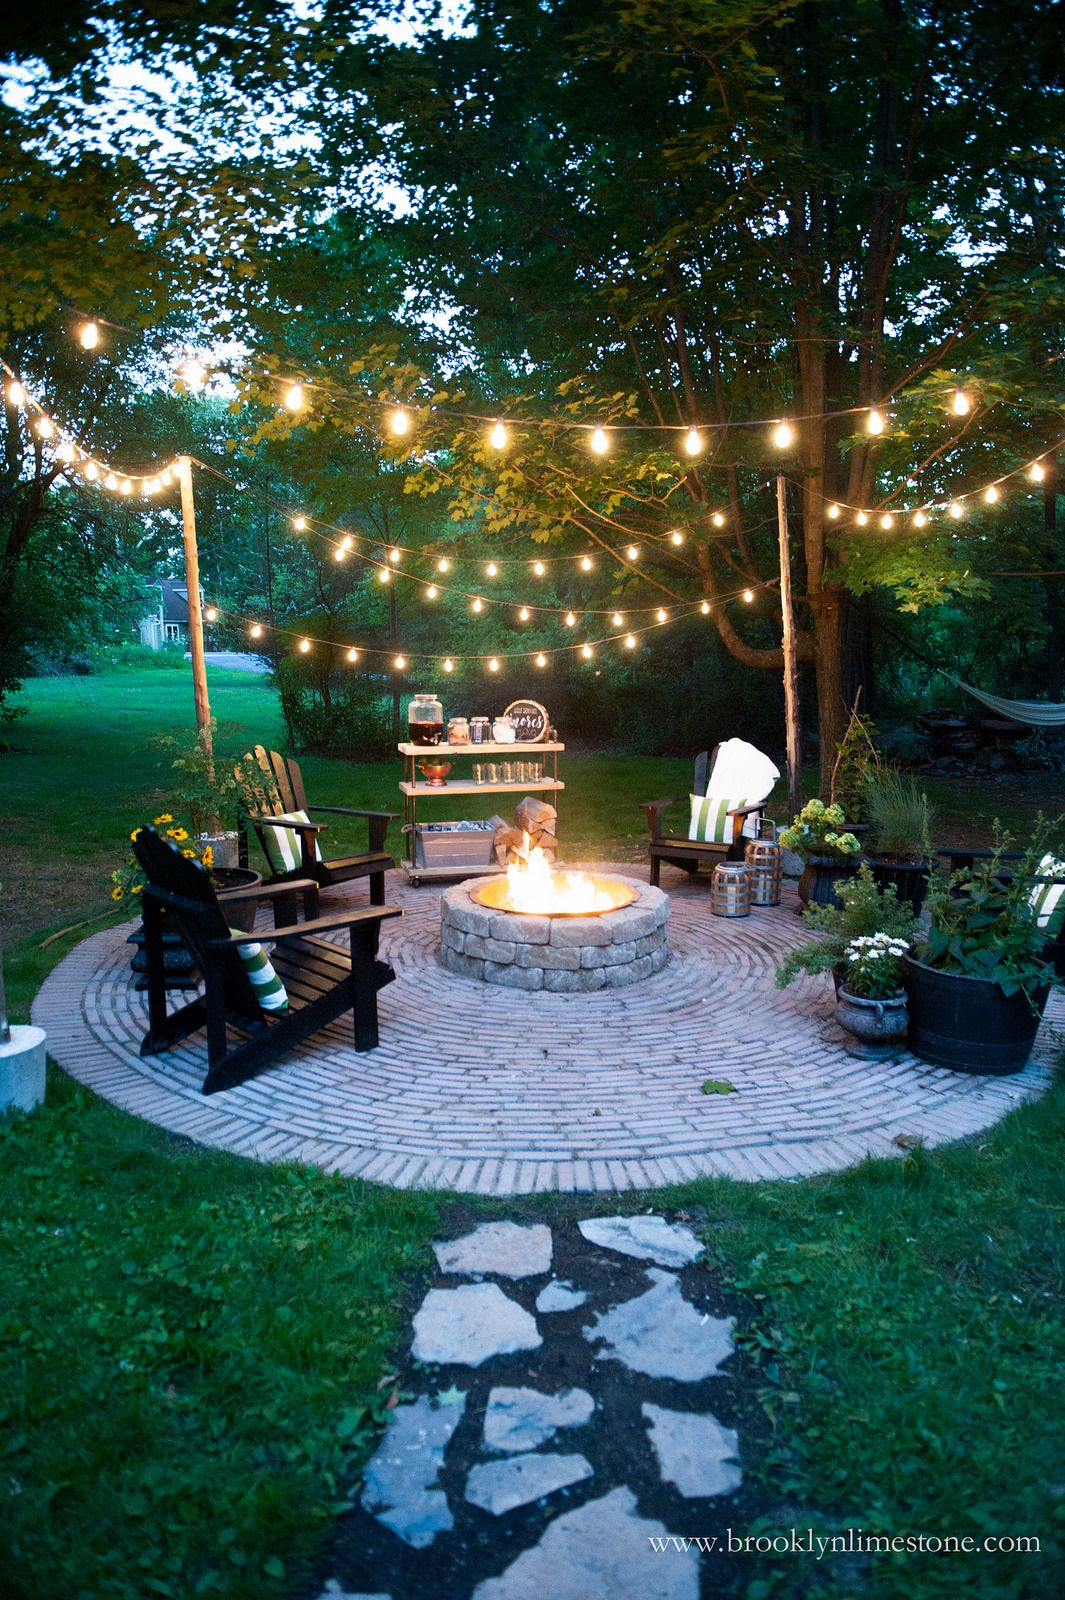 Exceptional 18 Fire Pit Ideas For Your Backyard